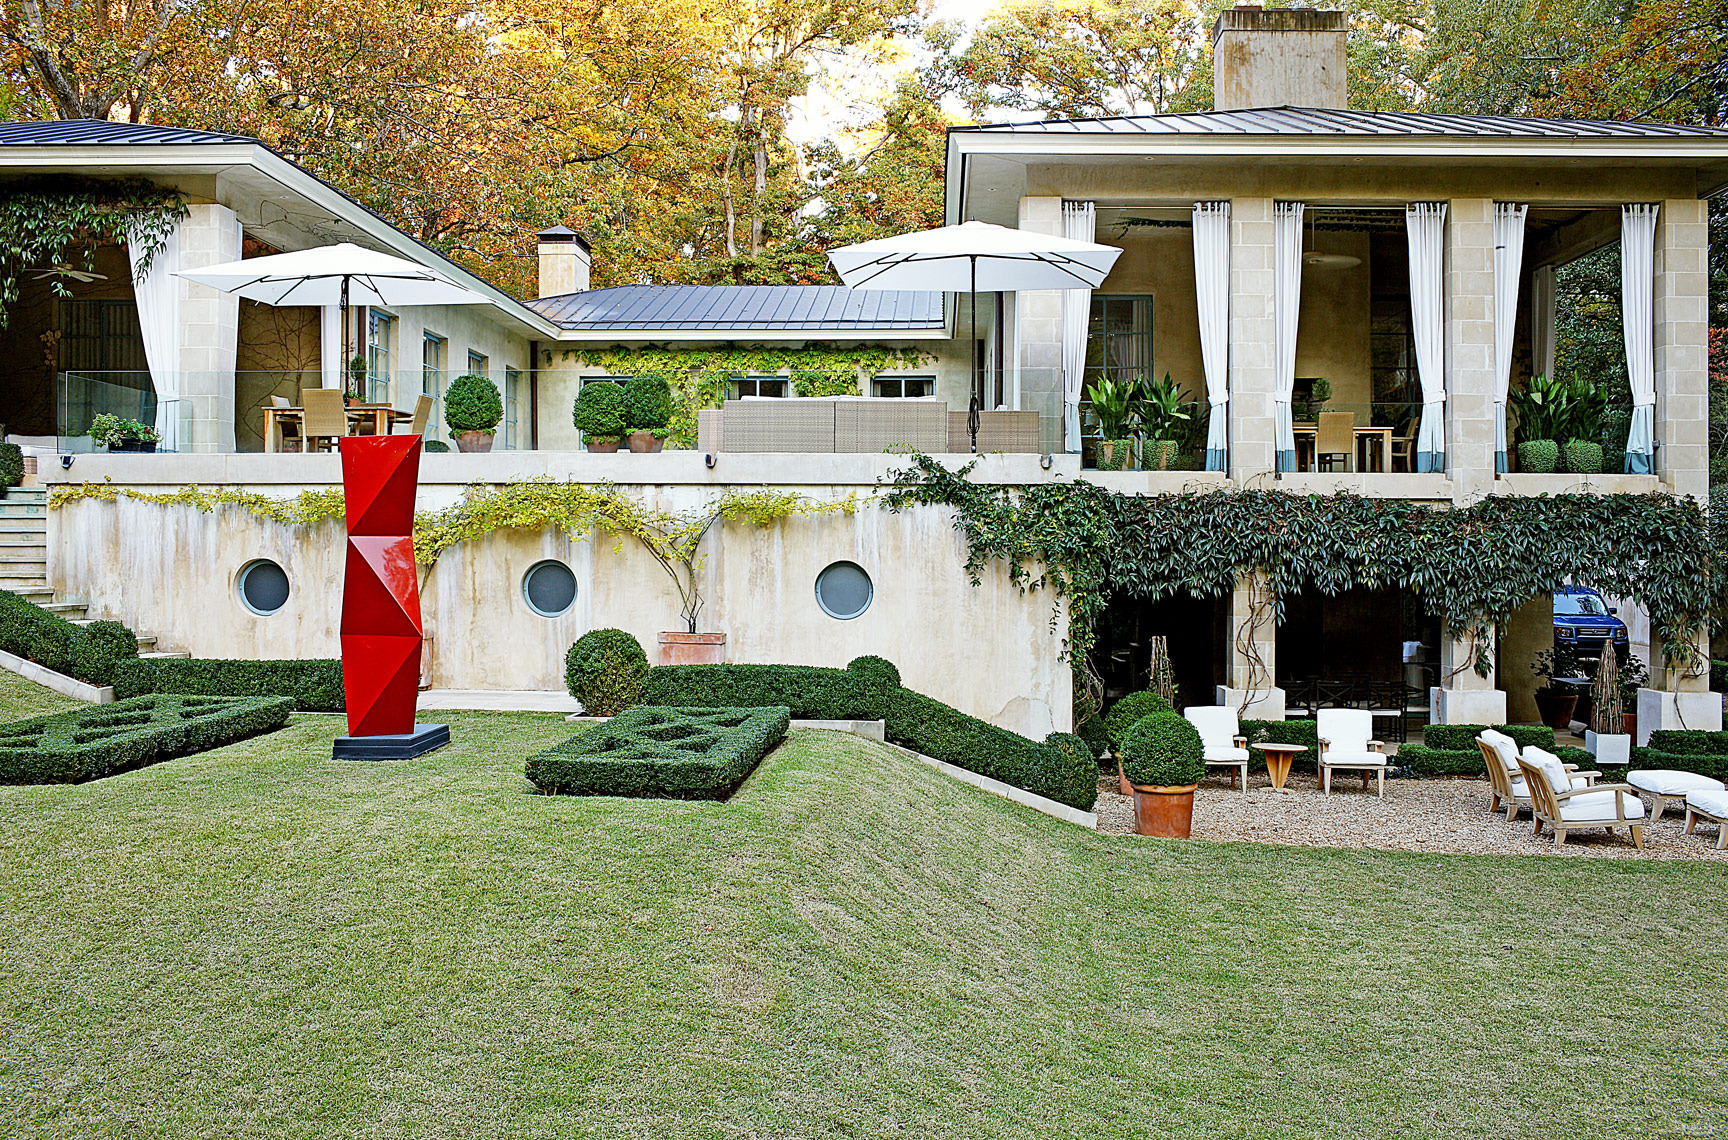 Keith Summerour house in Atlanta, by Mali Azima